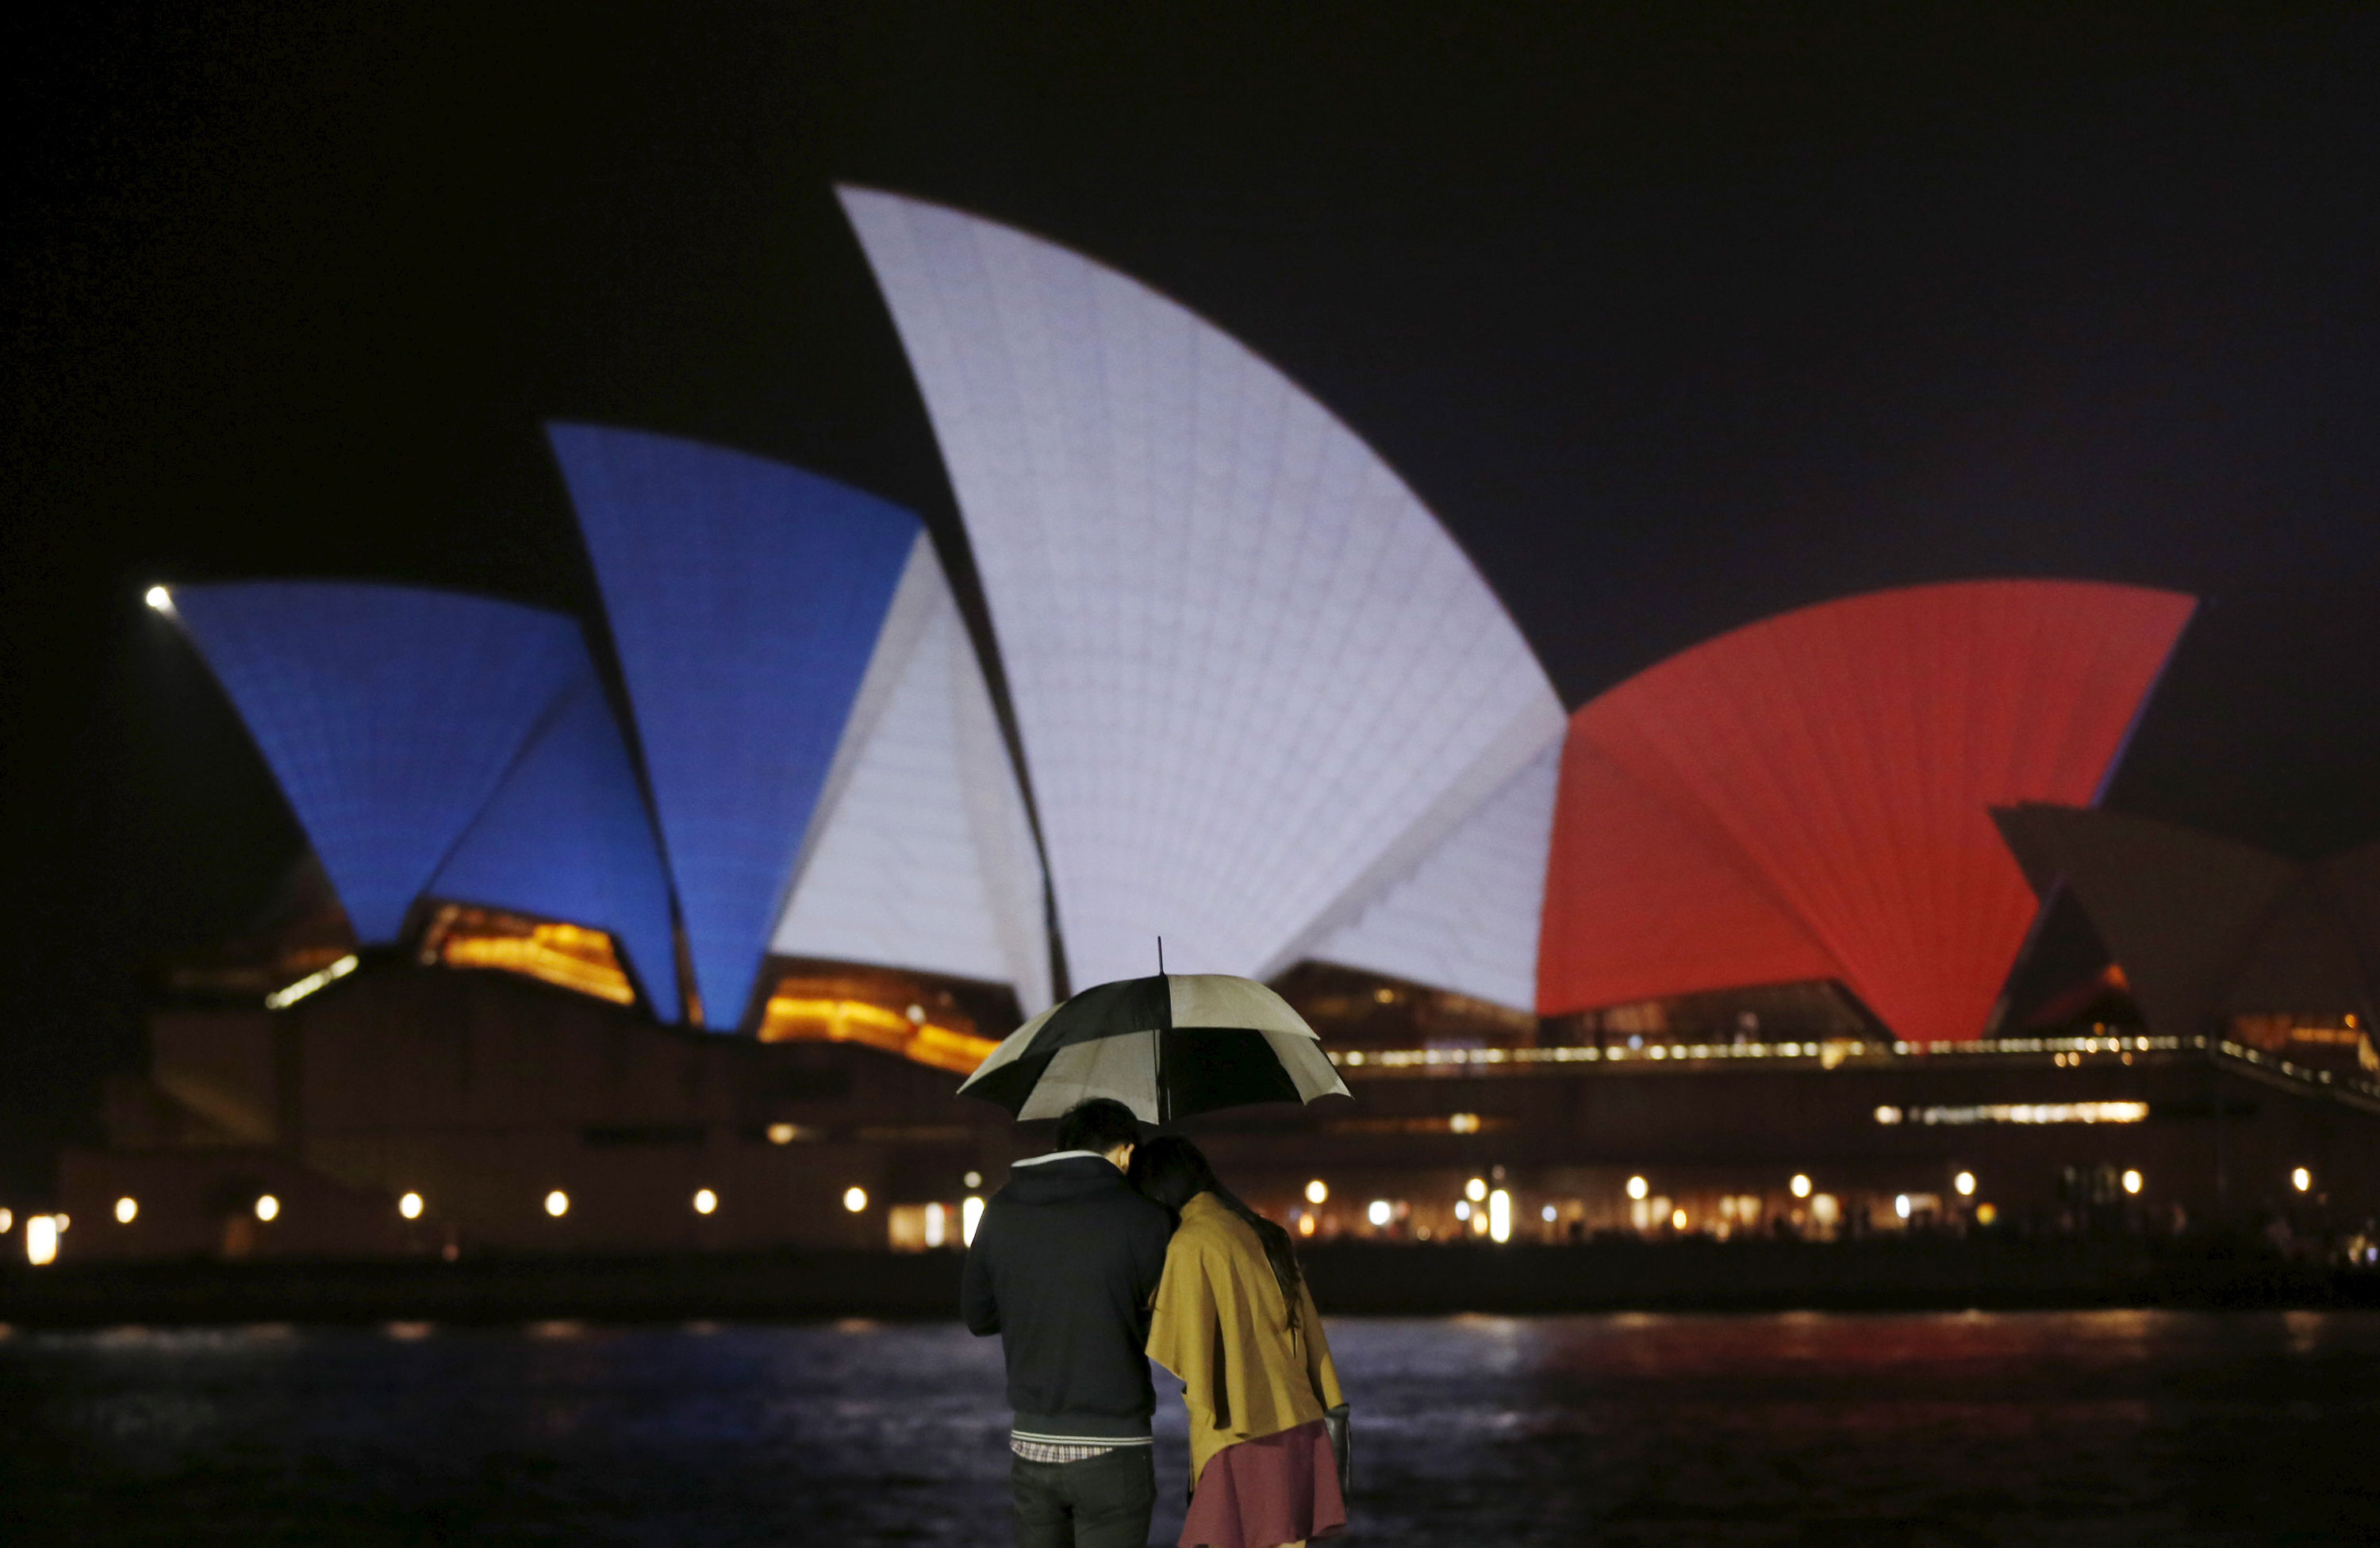 standing in solidarity with the blue white and red france al